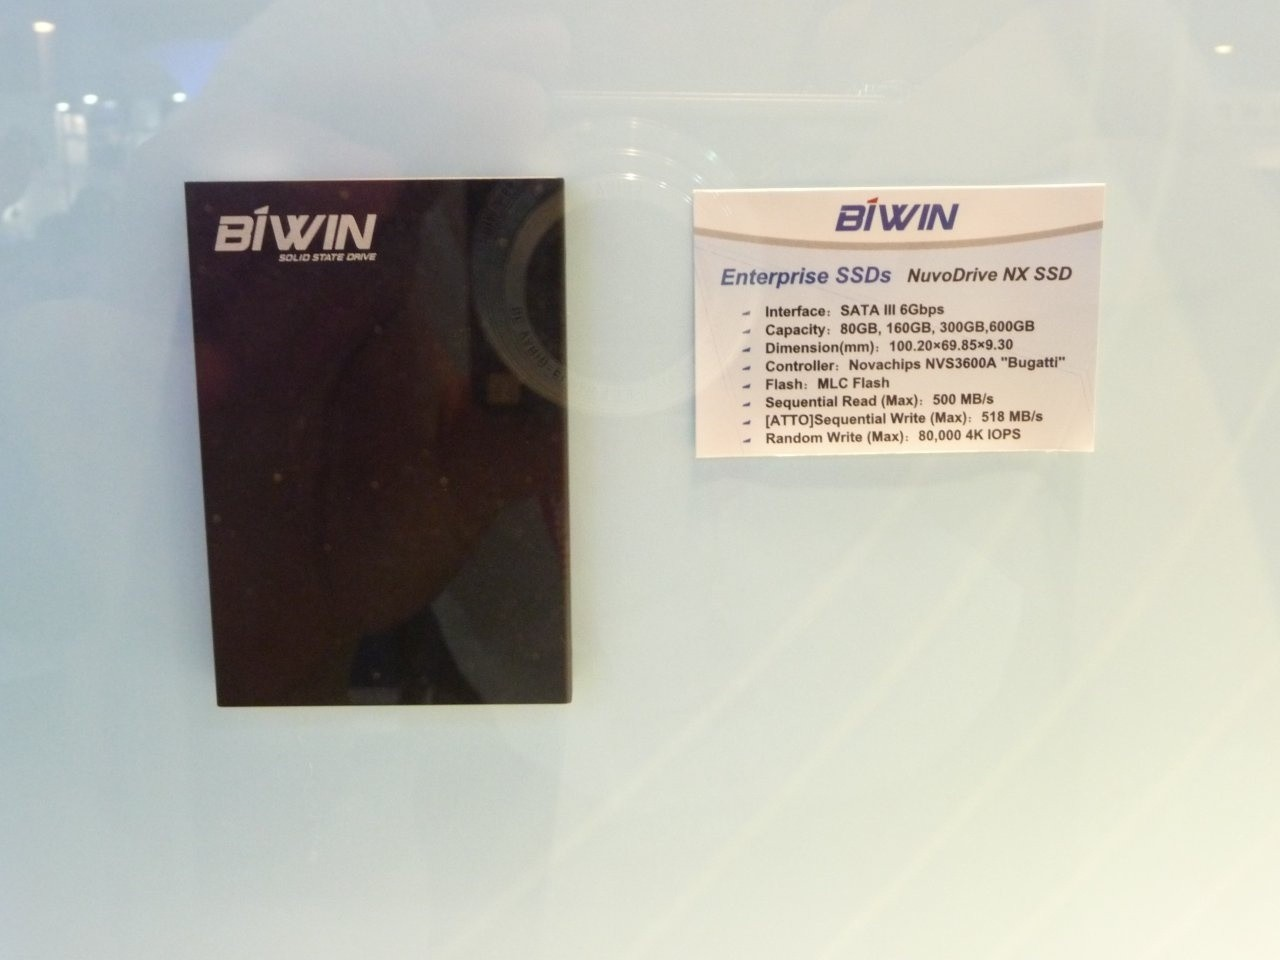 world_exclusive_biwin_nuvodrive_nx_ssd_novachips_bugatti_controller_first_tests